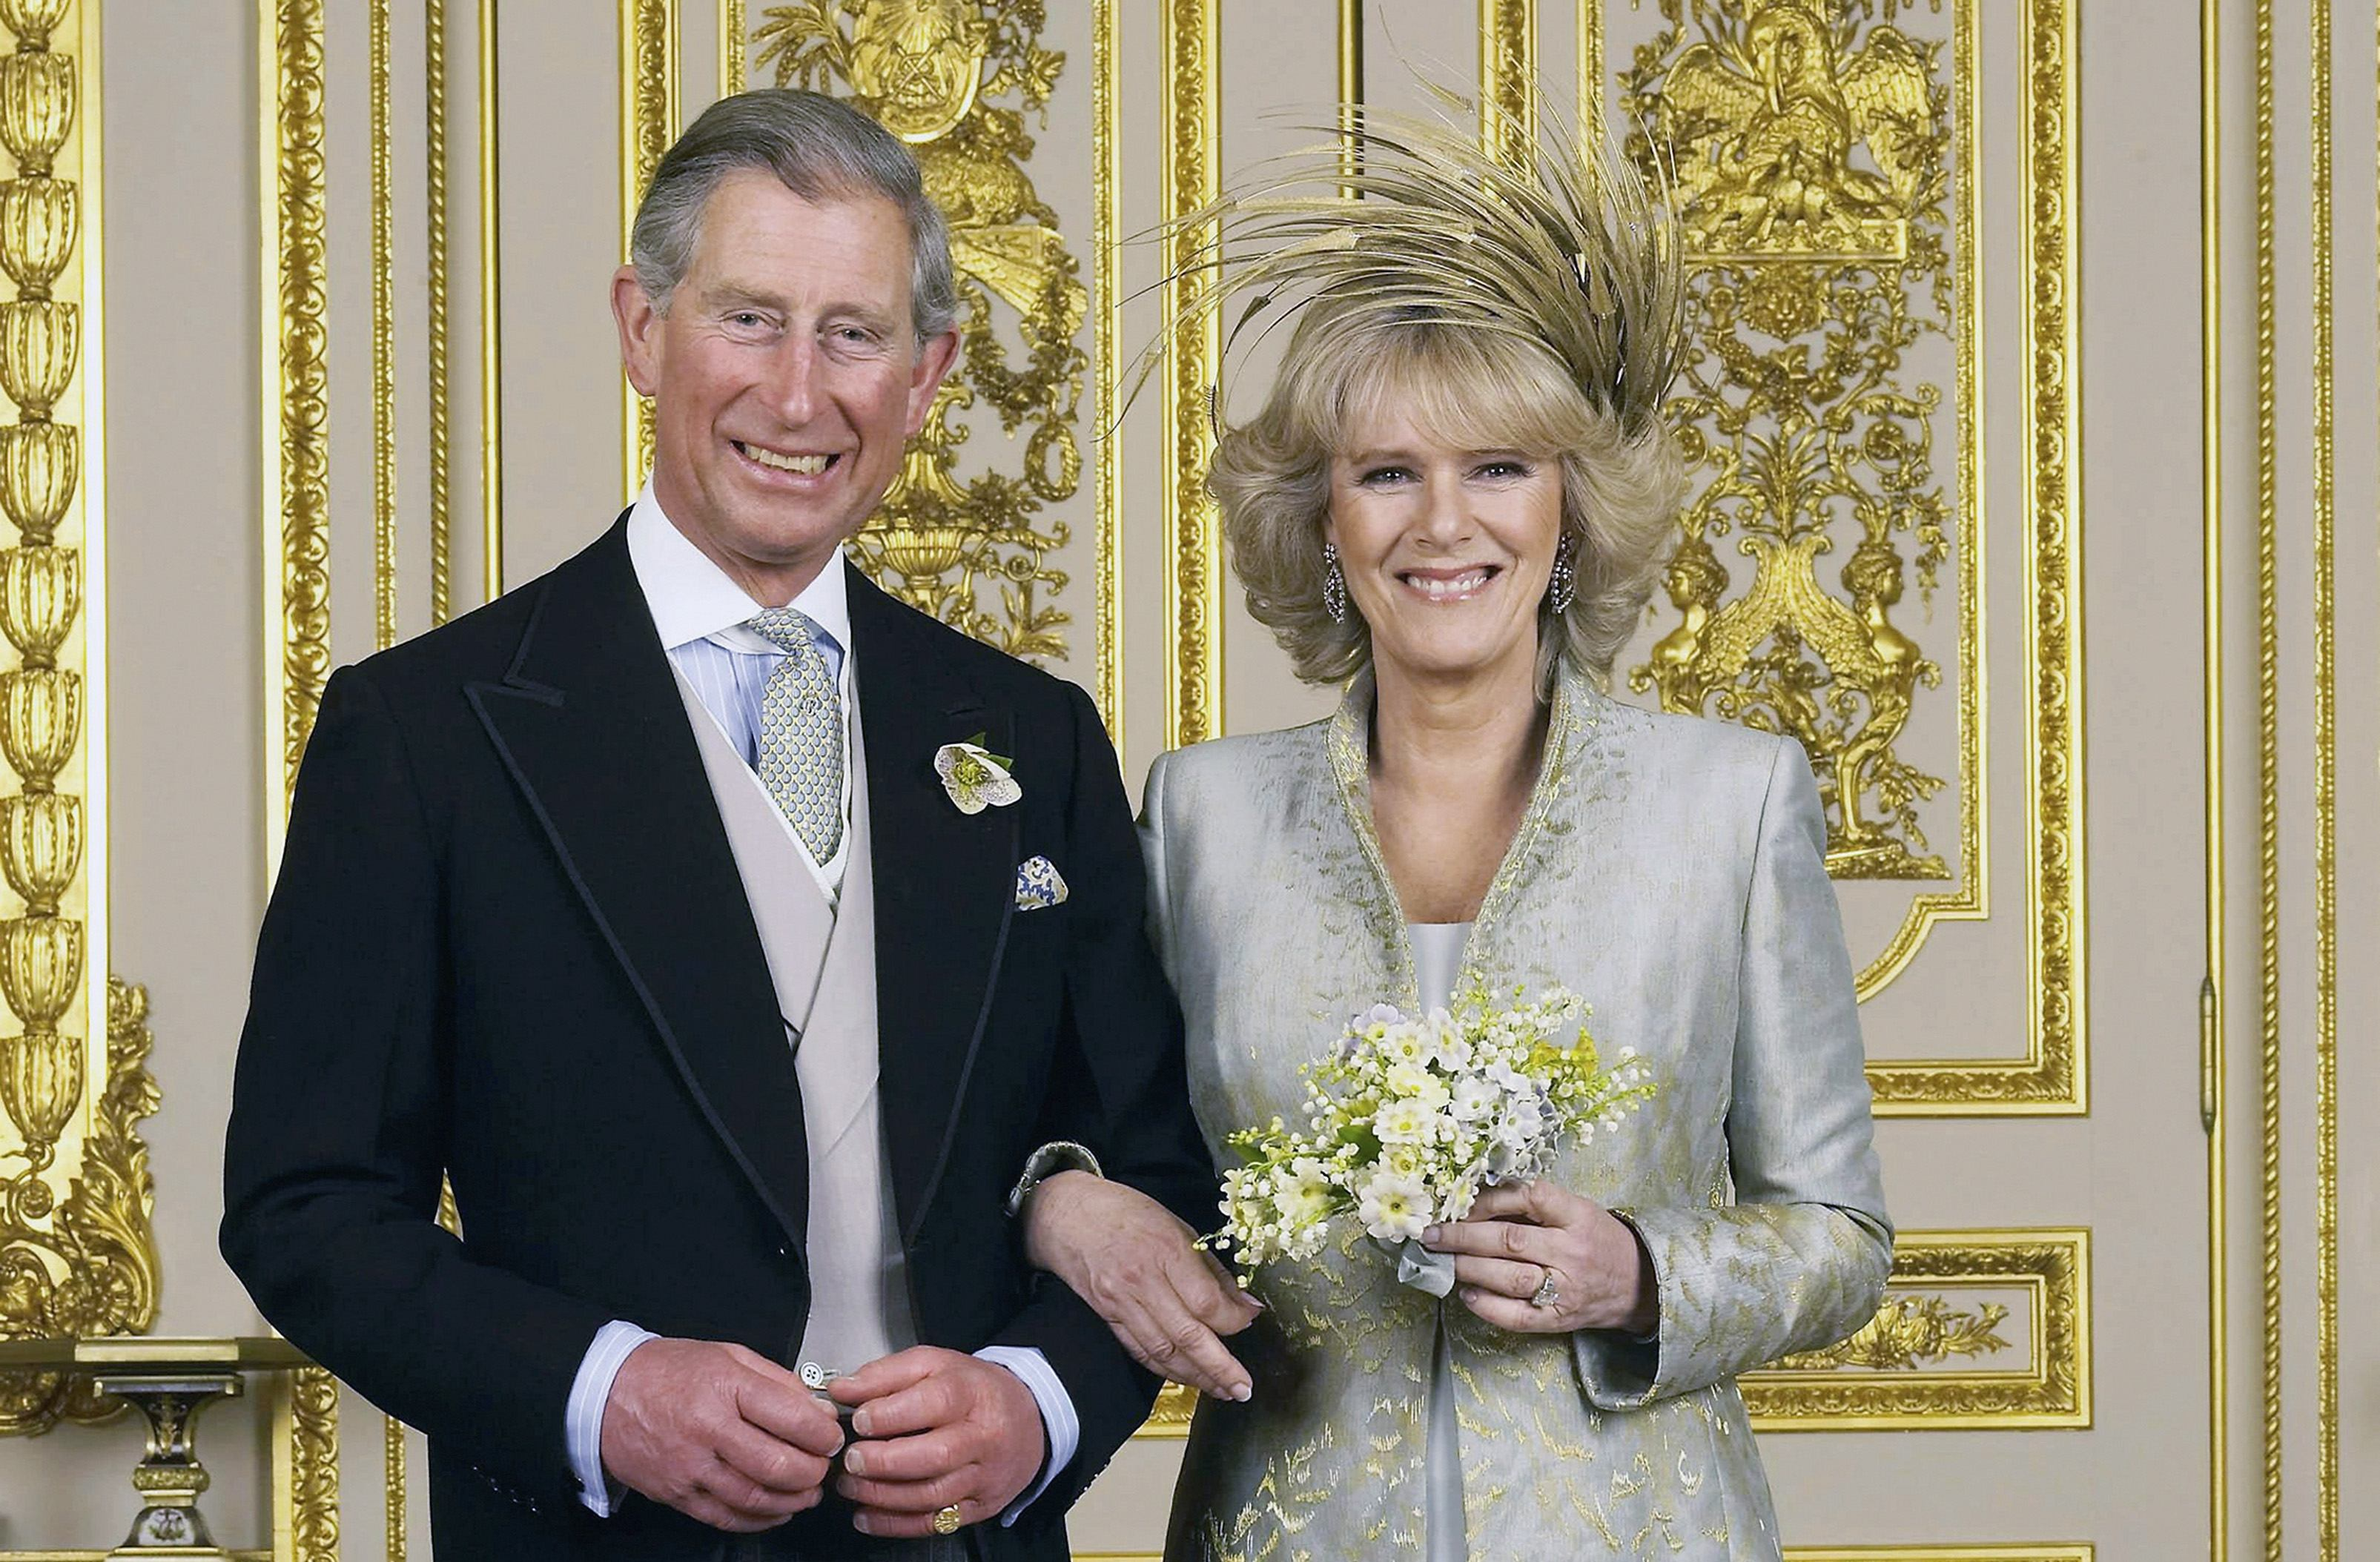 Prince Charles and Camilla Parker Bowles at their wedding